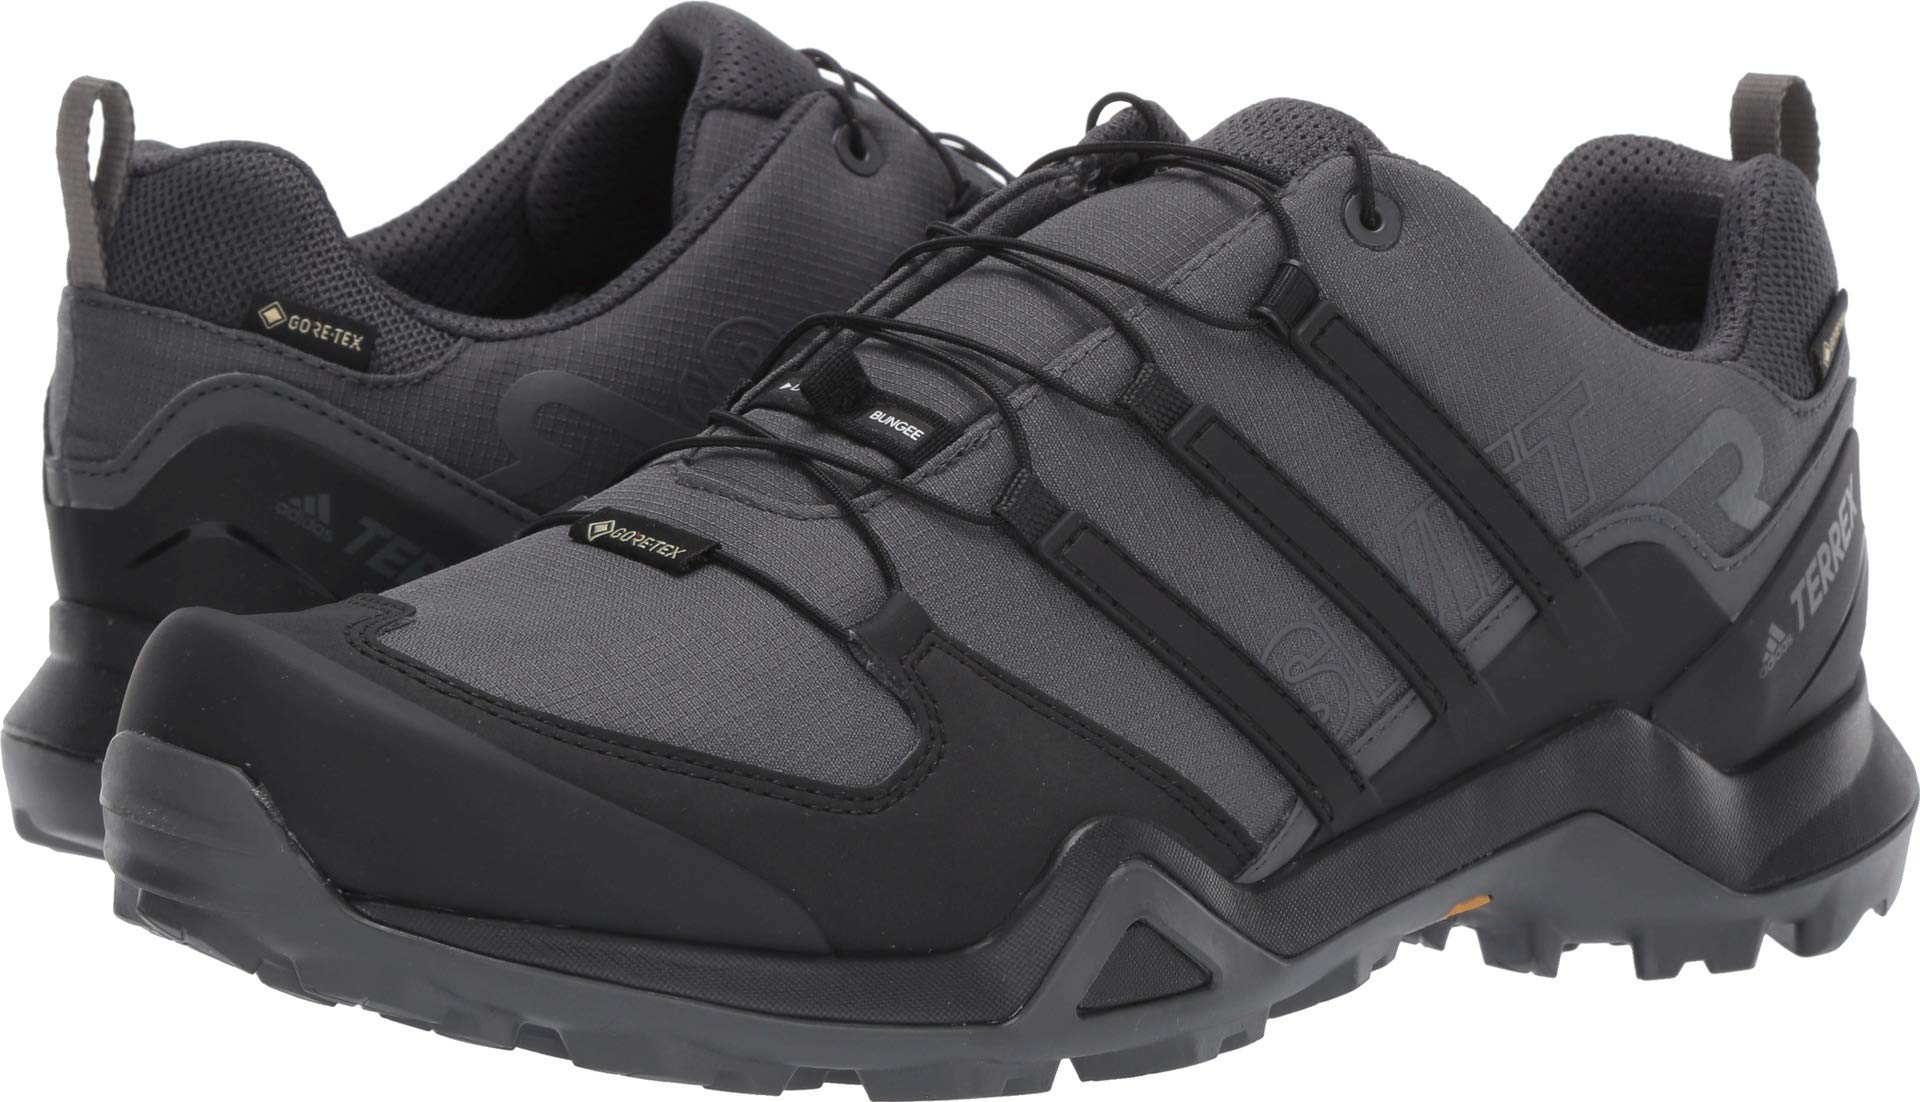 Swift Gtx¿ Galleon Adidas Outdoor Grey Terrex R2 Sixblack Men's H2WEIebD9Y